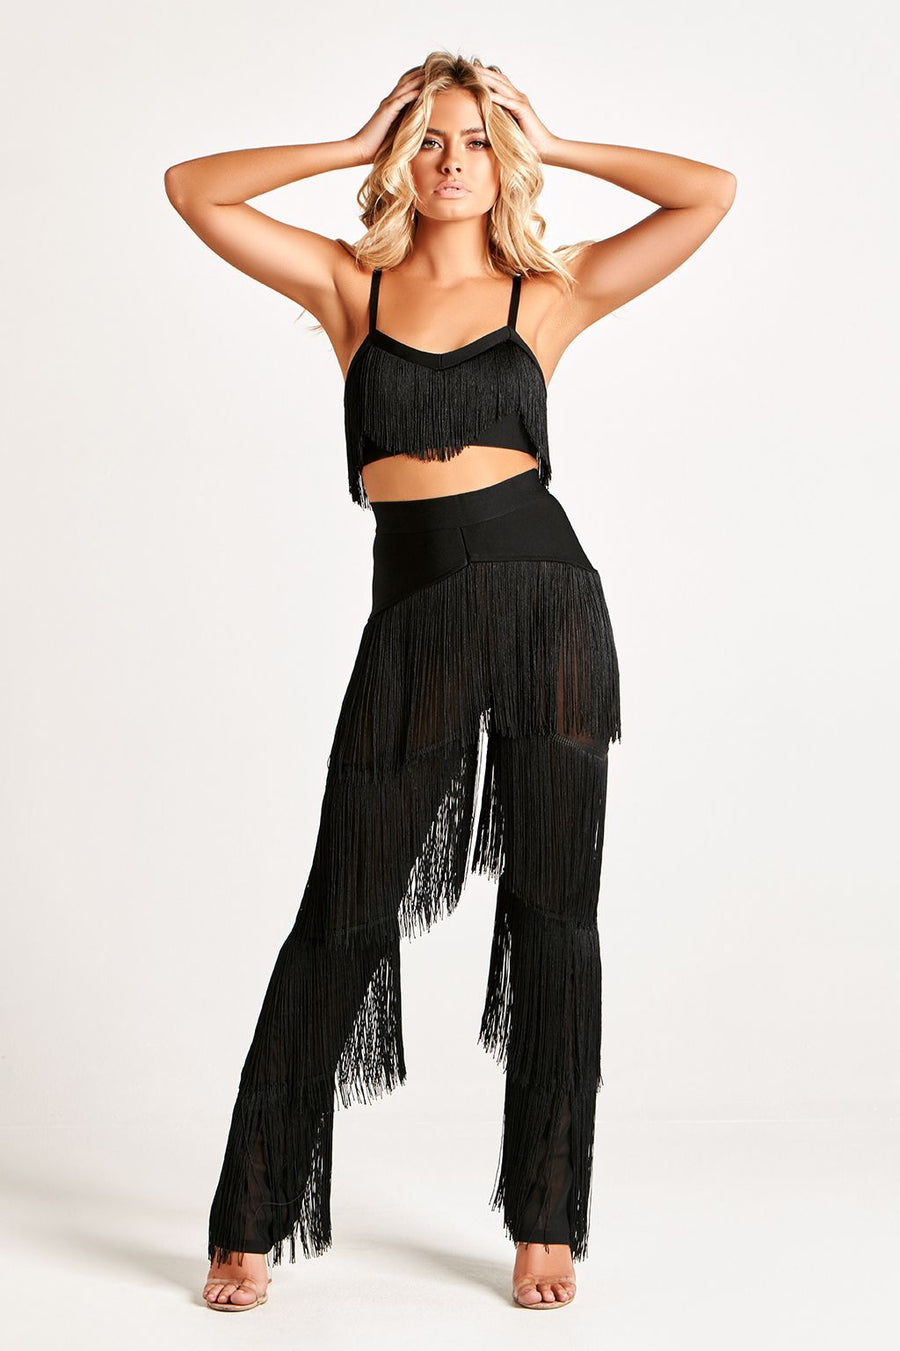 COLLETTE LUXE BANDAGE FRINGE CROP TOP IN BLACK